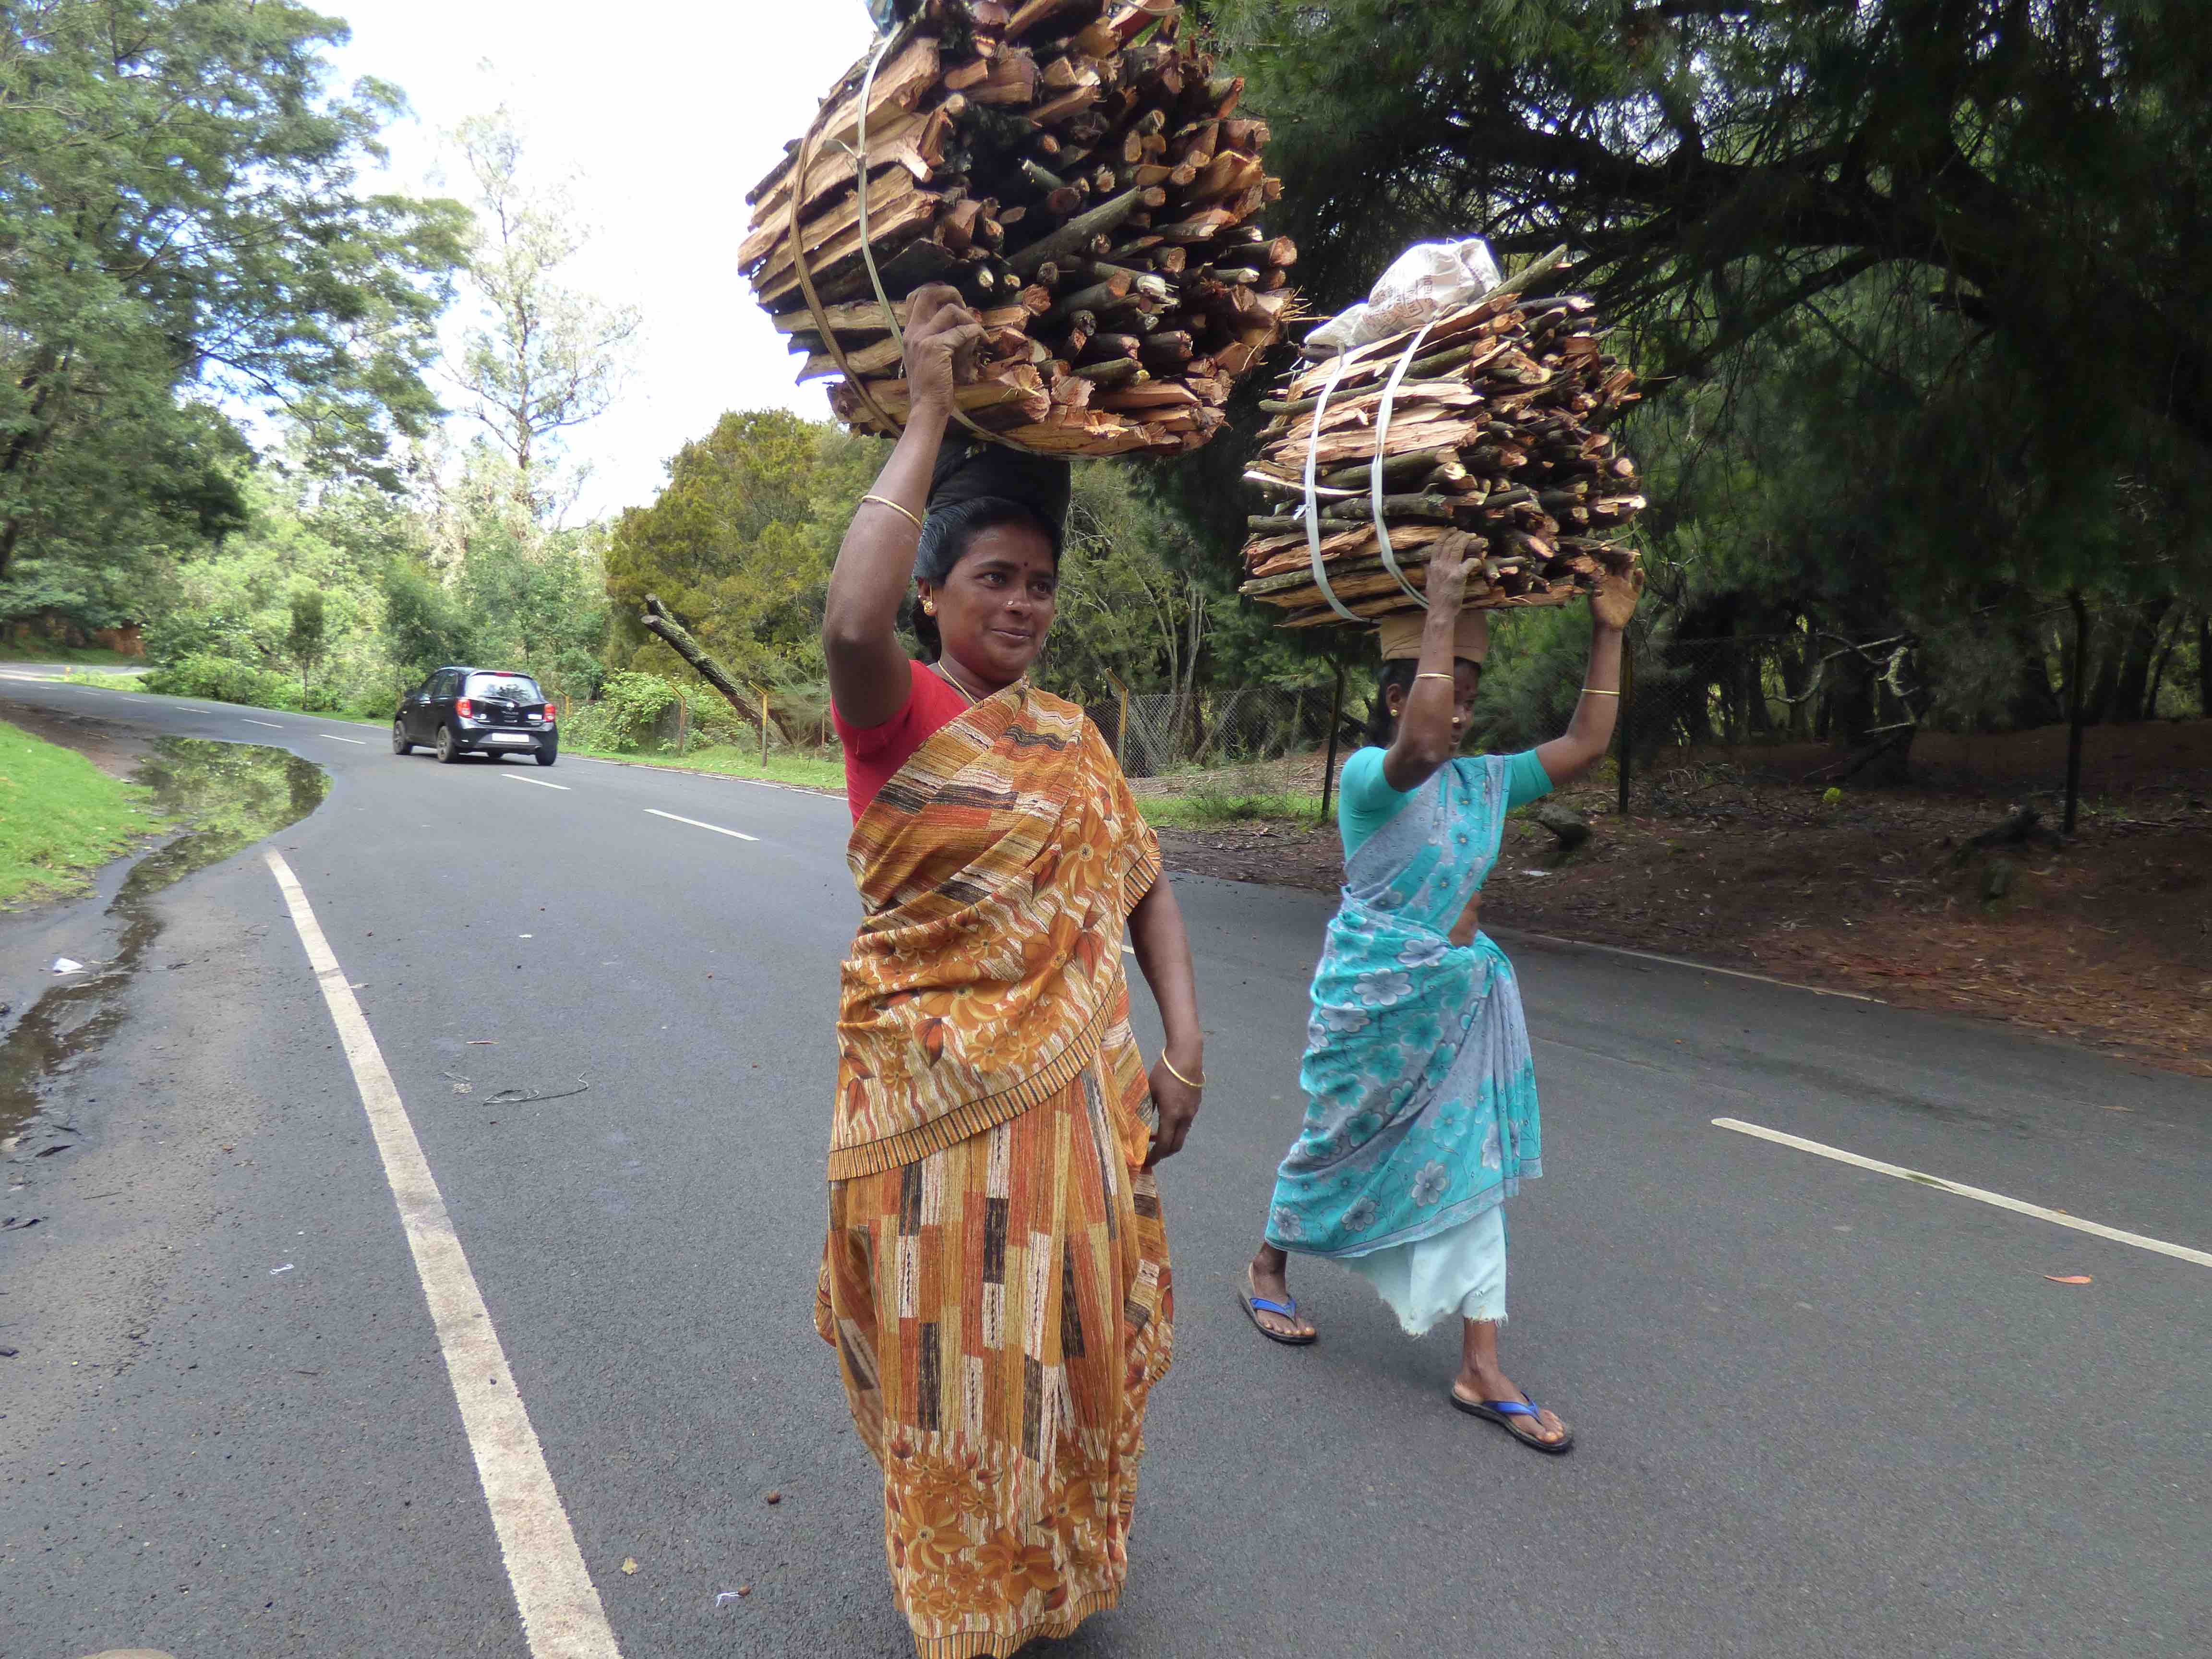 Women carrying headloads of firewood. Credit: Janaki Lenin